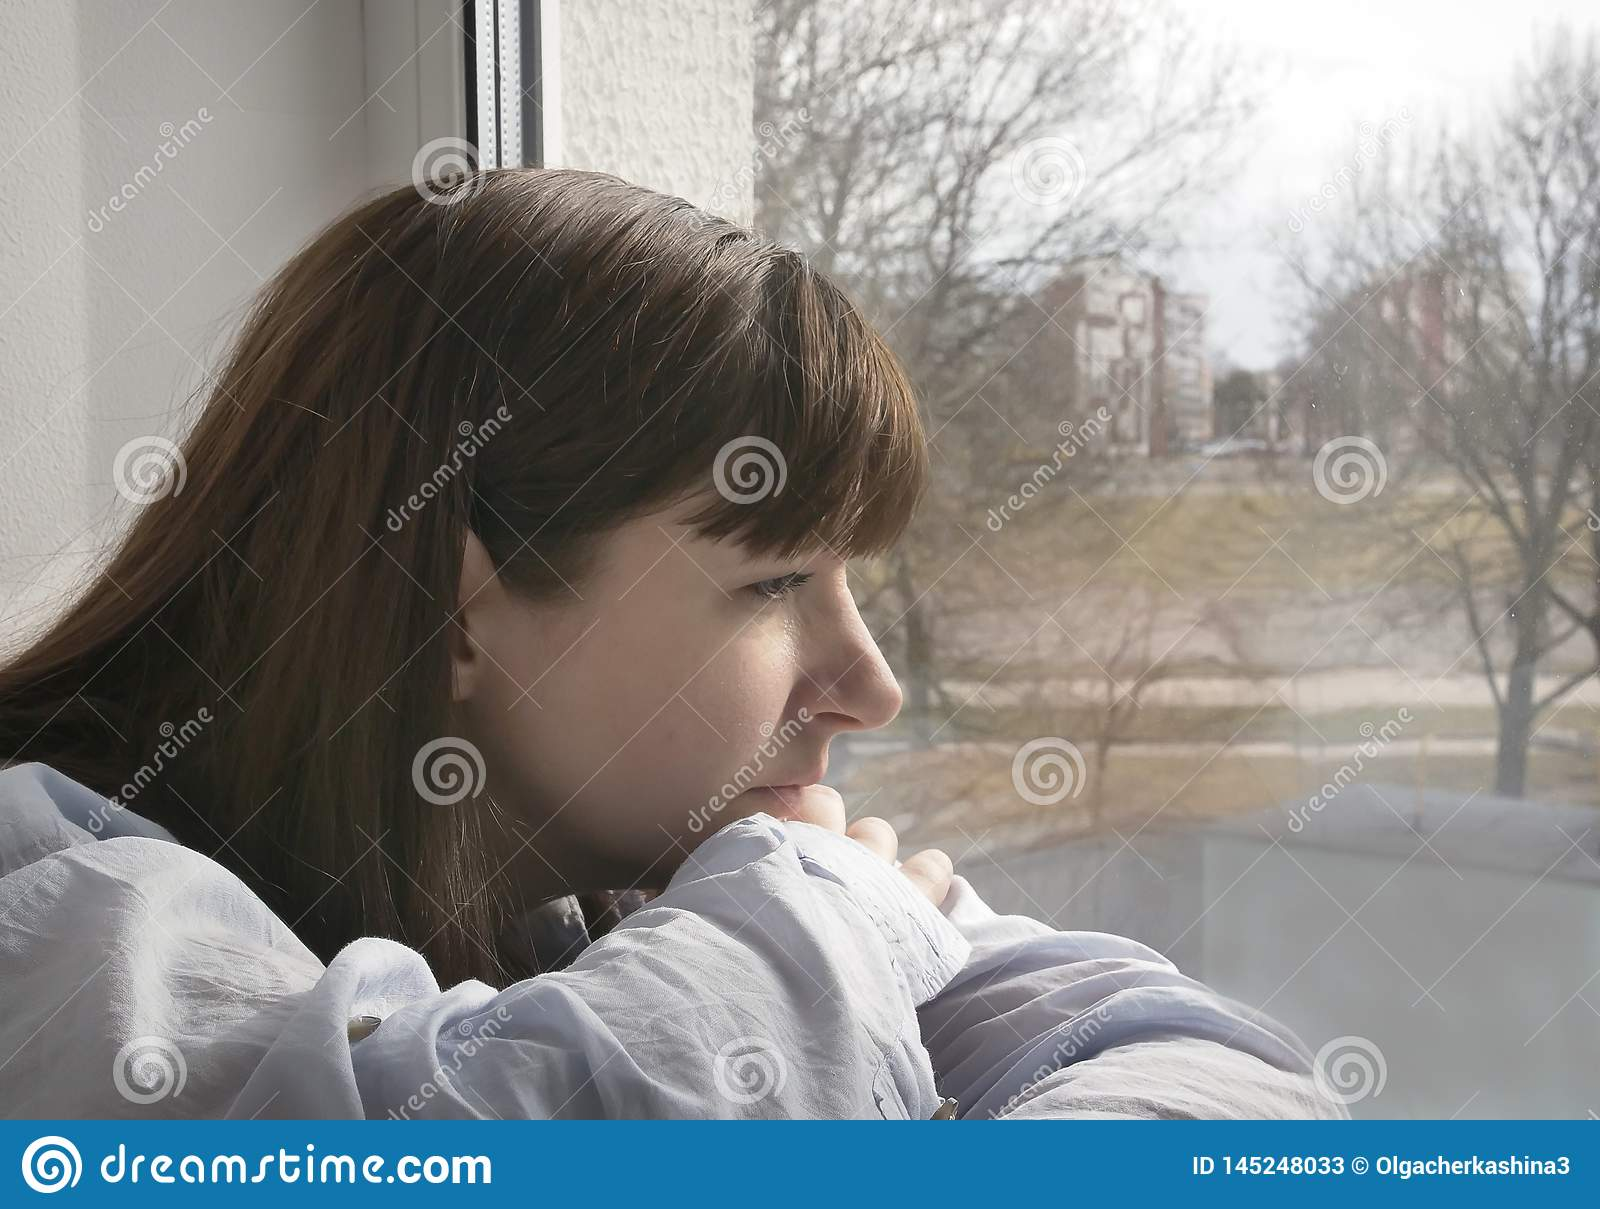 Cute young brunette woman sad looking window, close-up